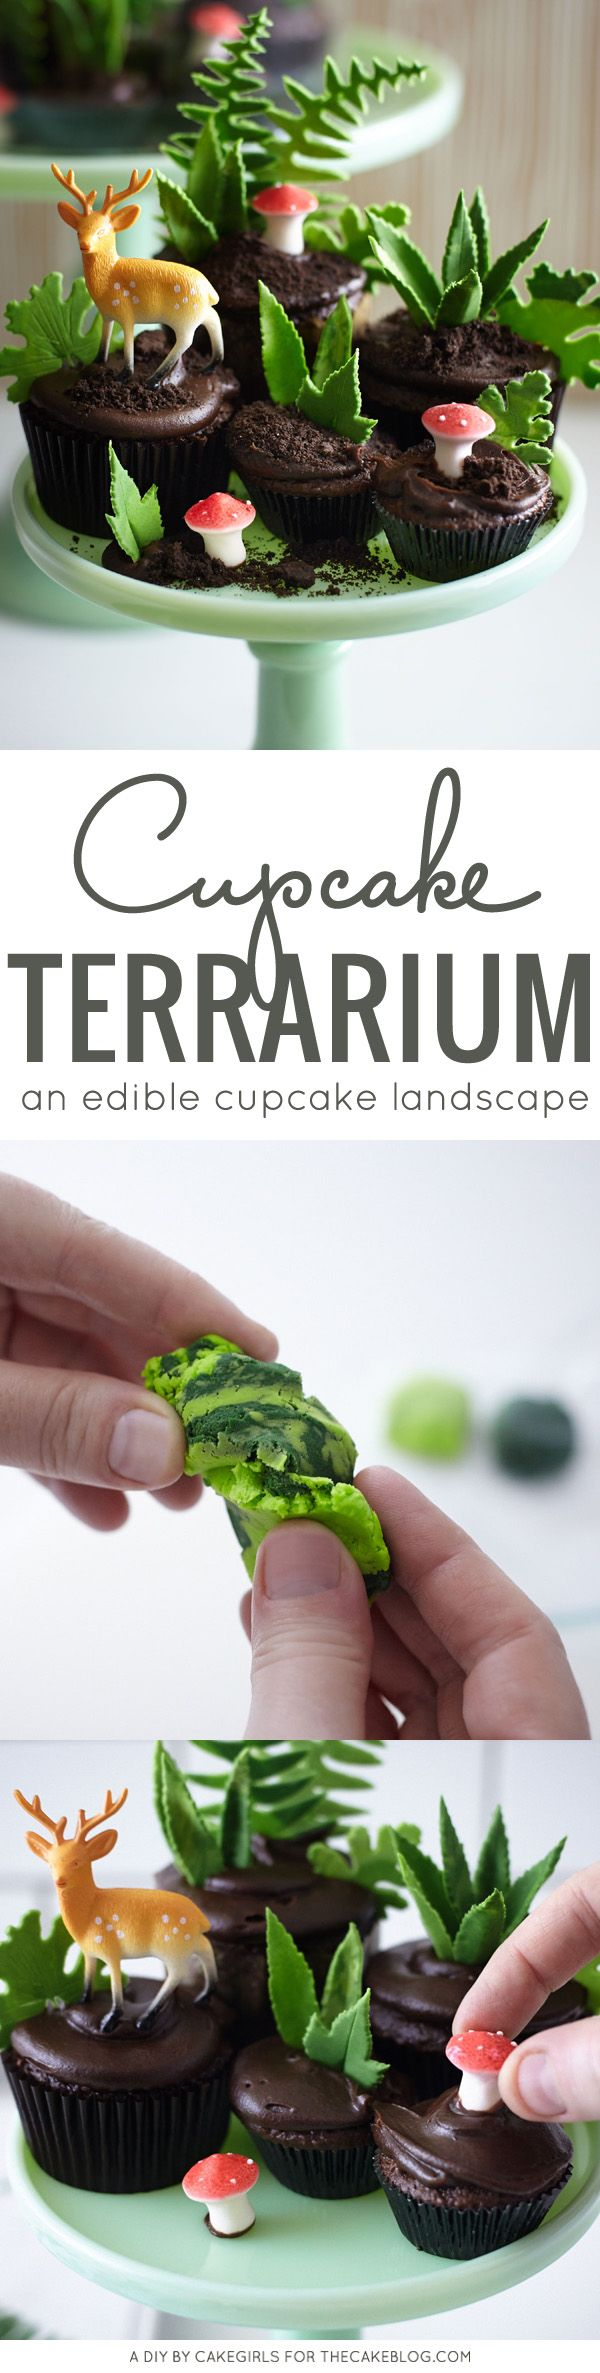 an edible cupcake landscape | DIY Cupcake Terrarium | a cake tutorial by Cakegirls for TheCakeBlog.com